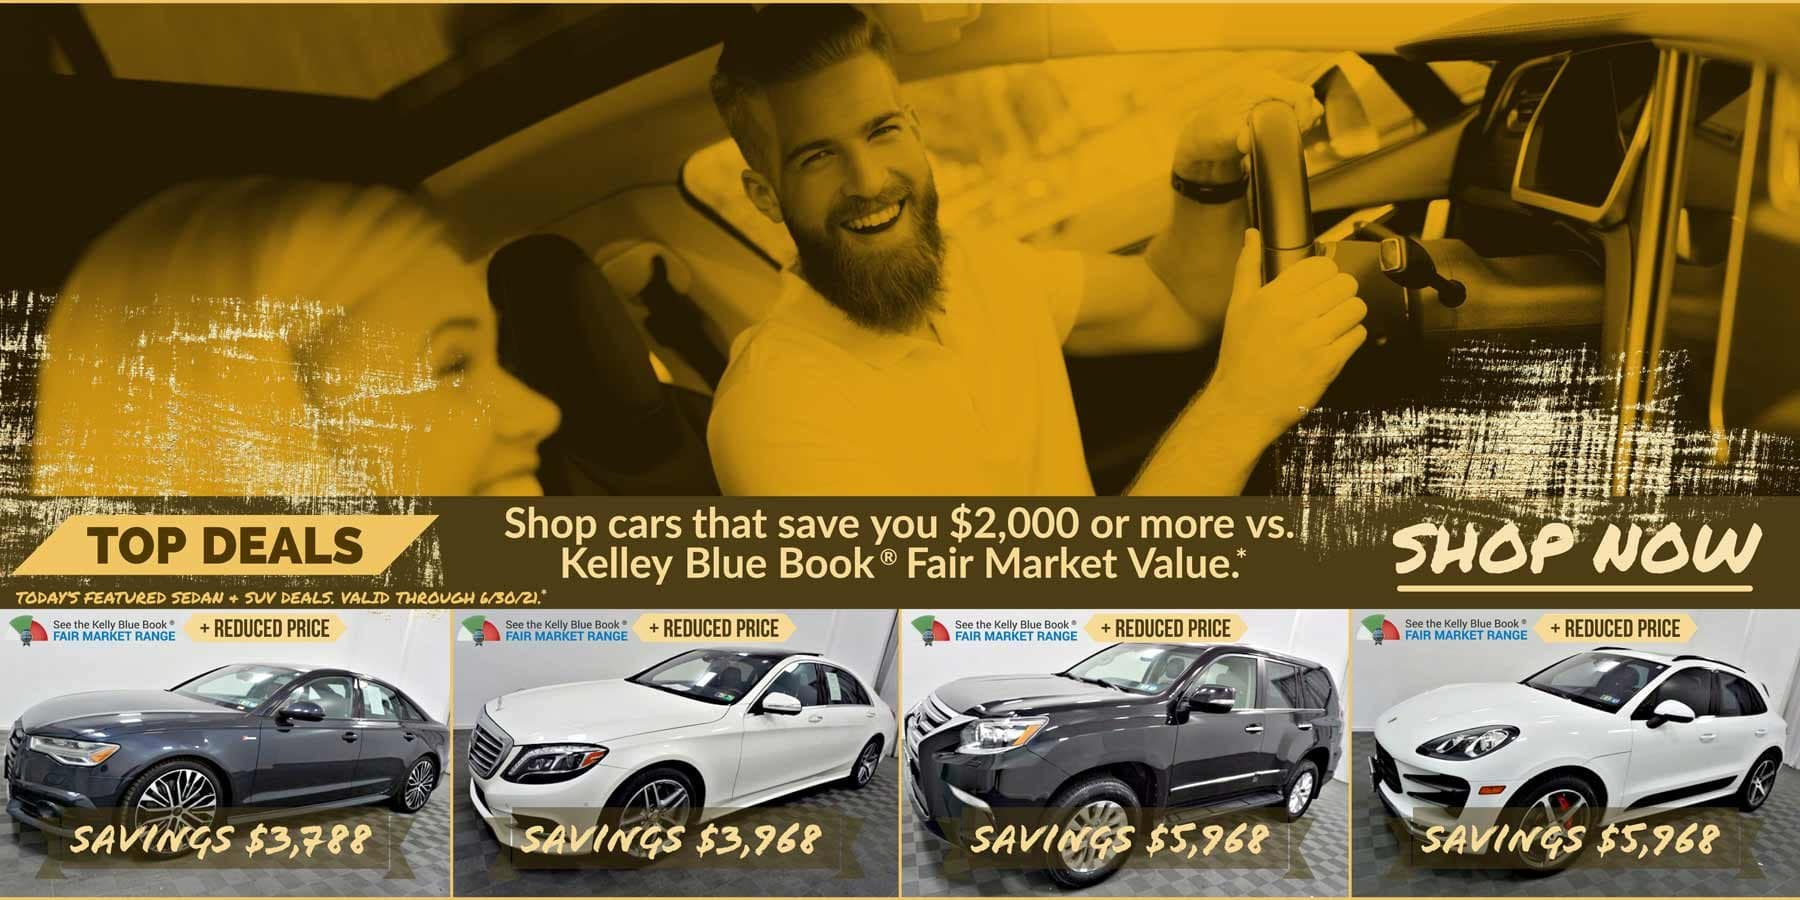 Today's featured Sedan & SUV for sale deals. Valid through 6/30/21.